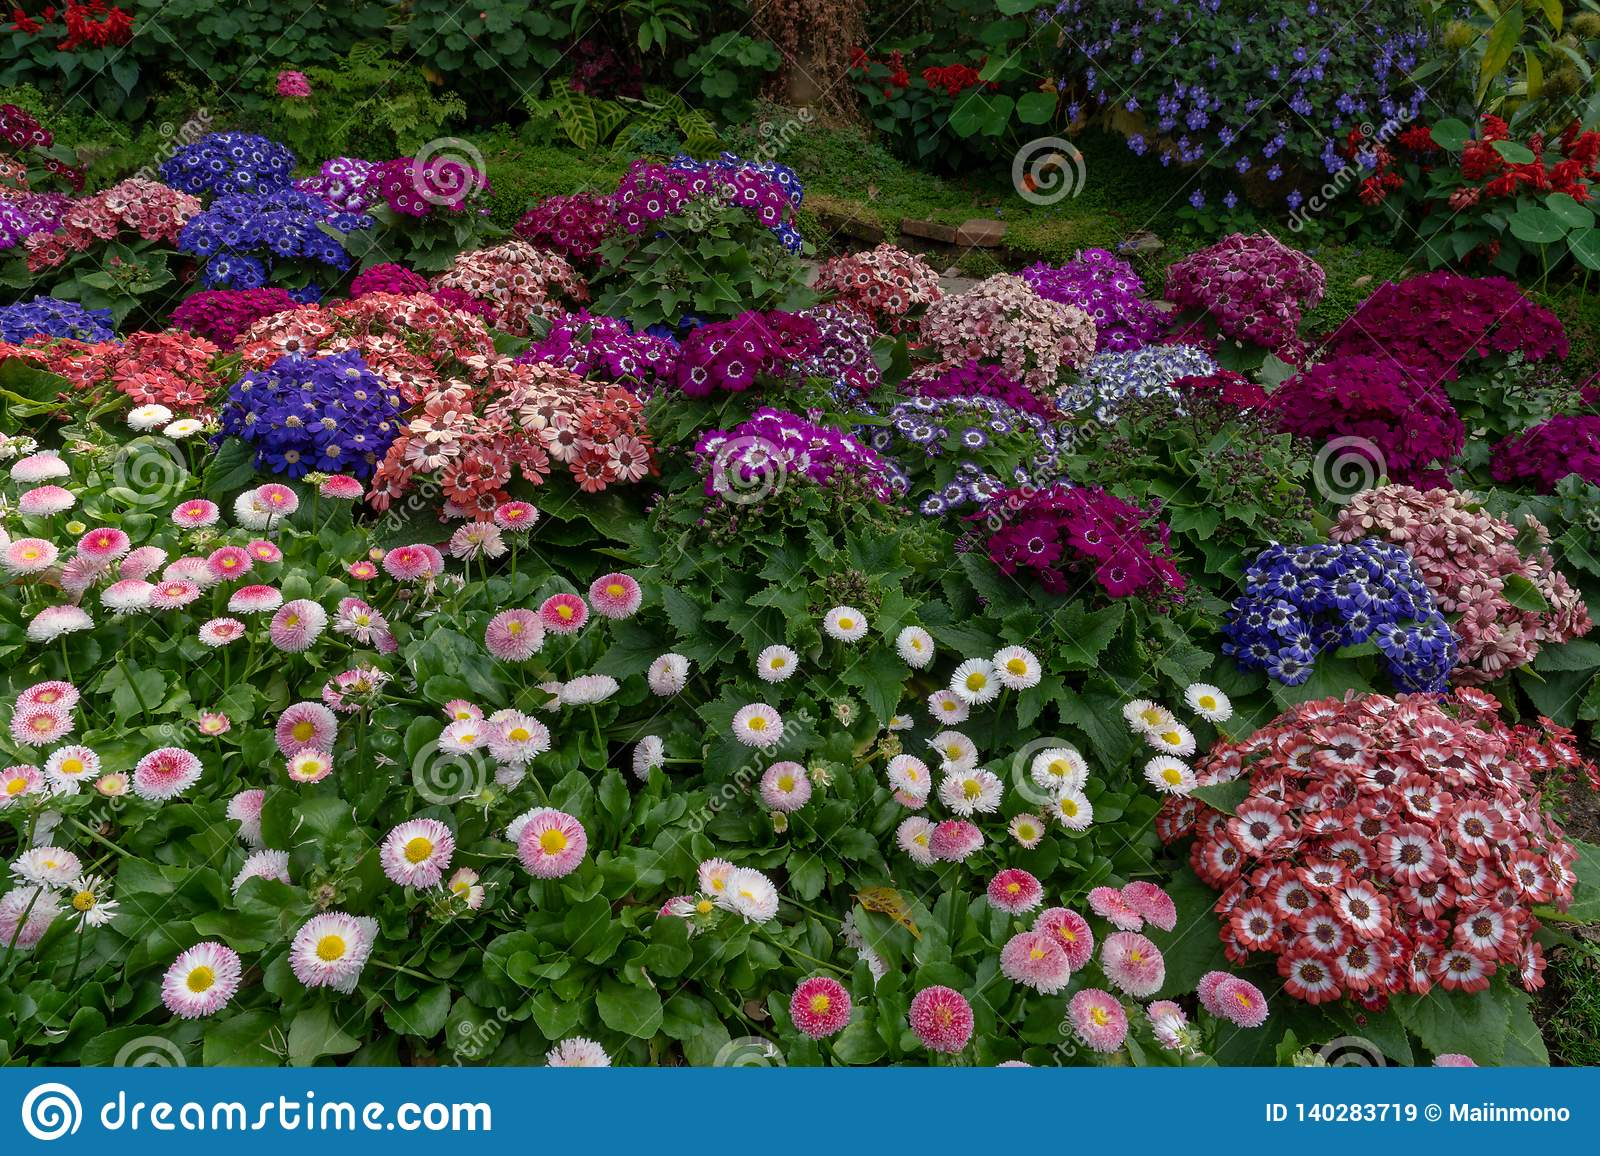 Many varieties of colorful and lovely winter flowers in a botanic garden in Chiang Mai, Thailand.